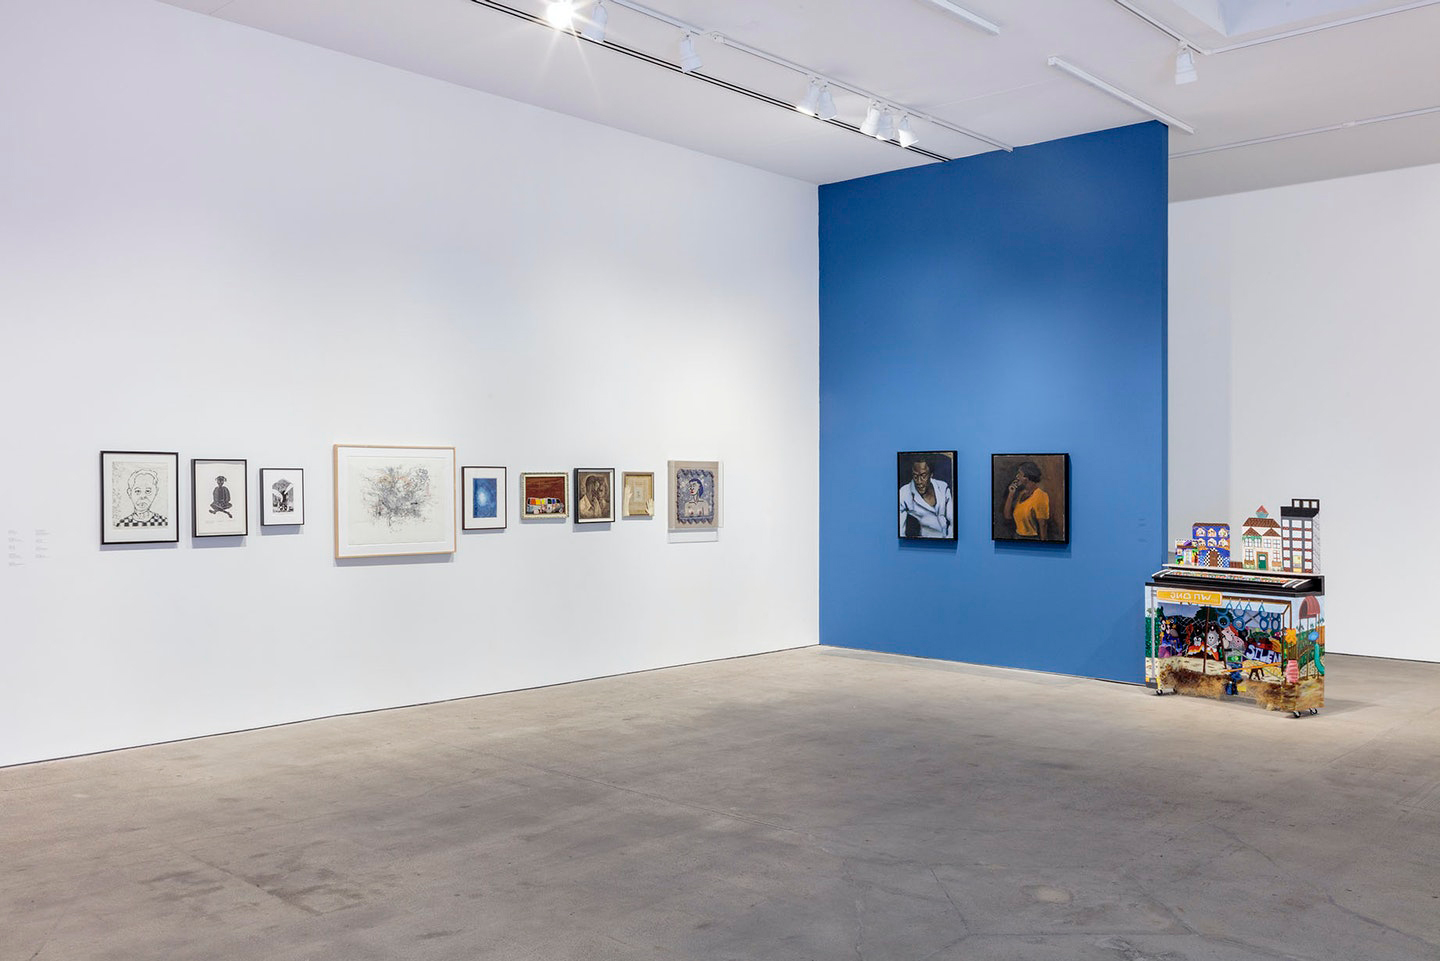 Installation view of Collective Constellation: Selections from The Eileen Harris Norton Collection at Art + Practice. 08 February 2020 - 02 January 2021. Photo: Charles White